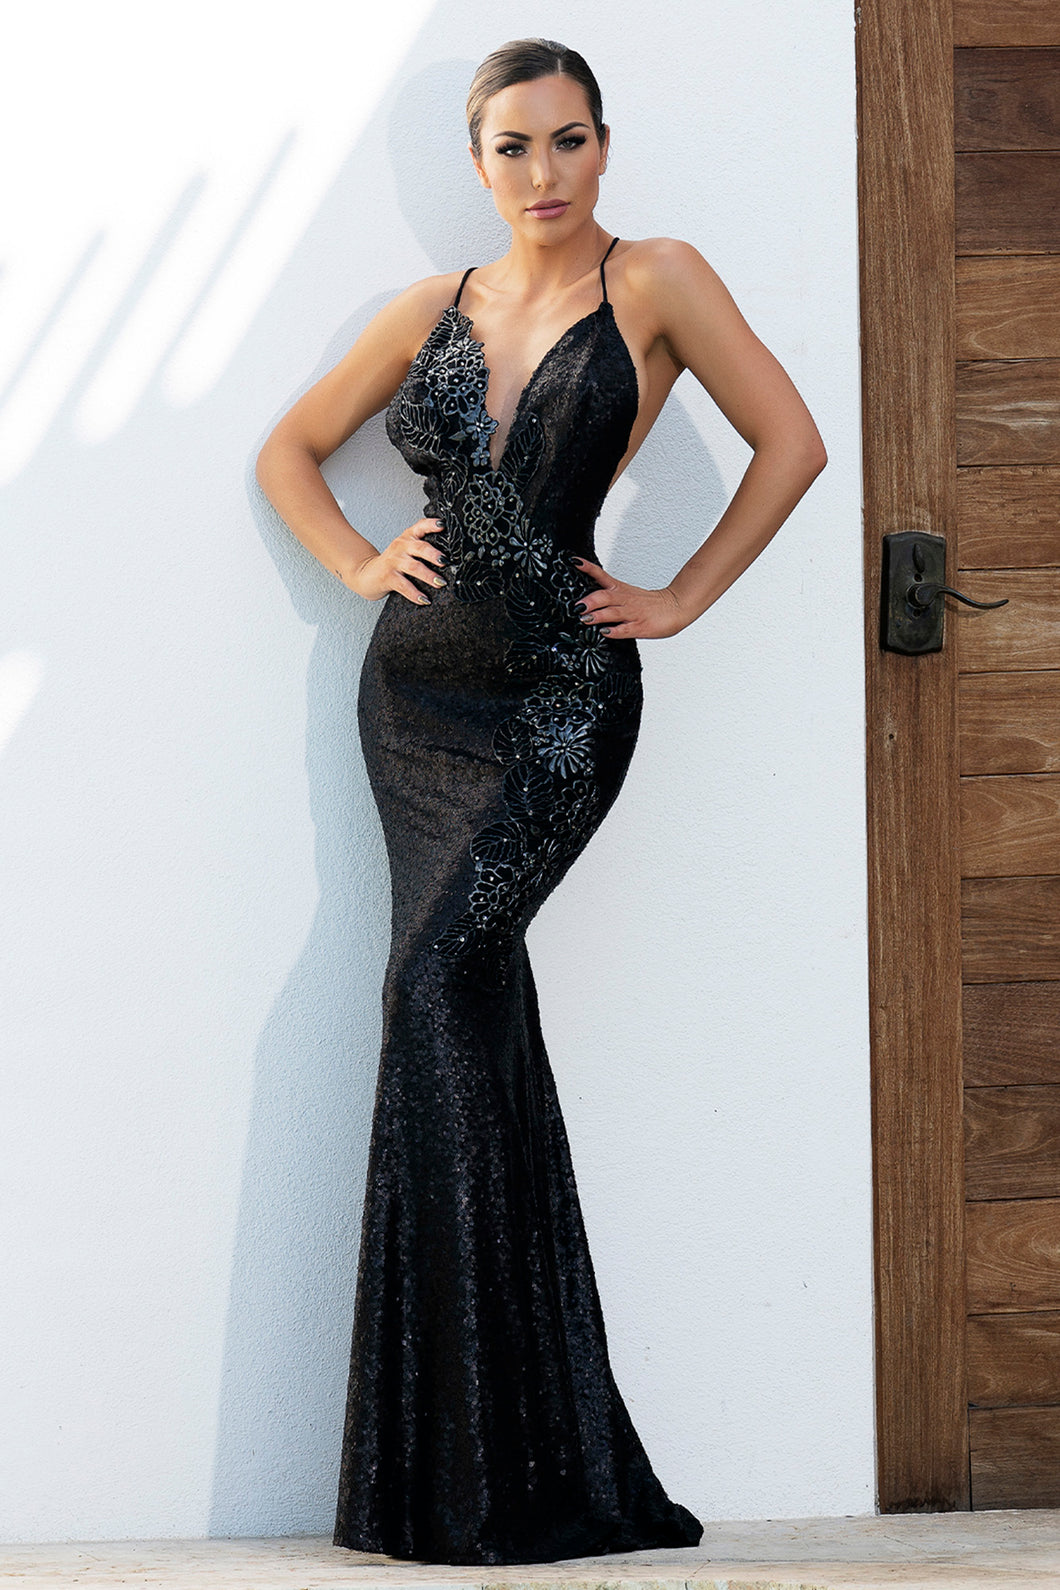 Allison Sequins Painted Black Platinum Long Dress. Miami Gowns Design - BACCIO Couture